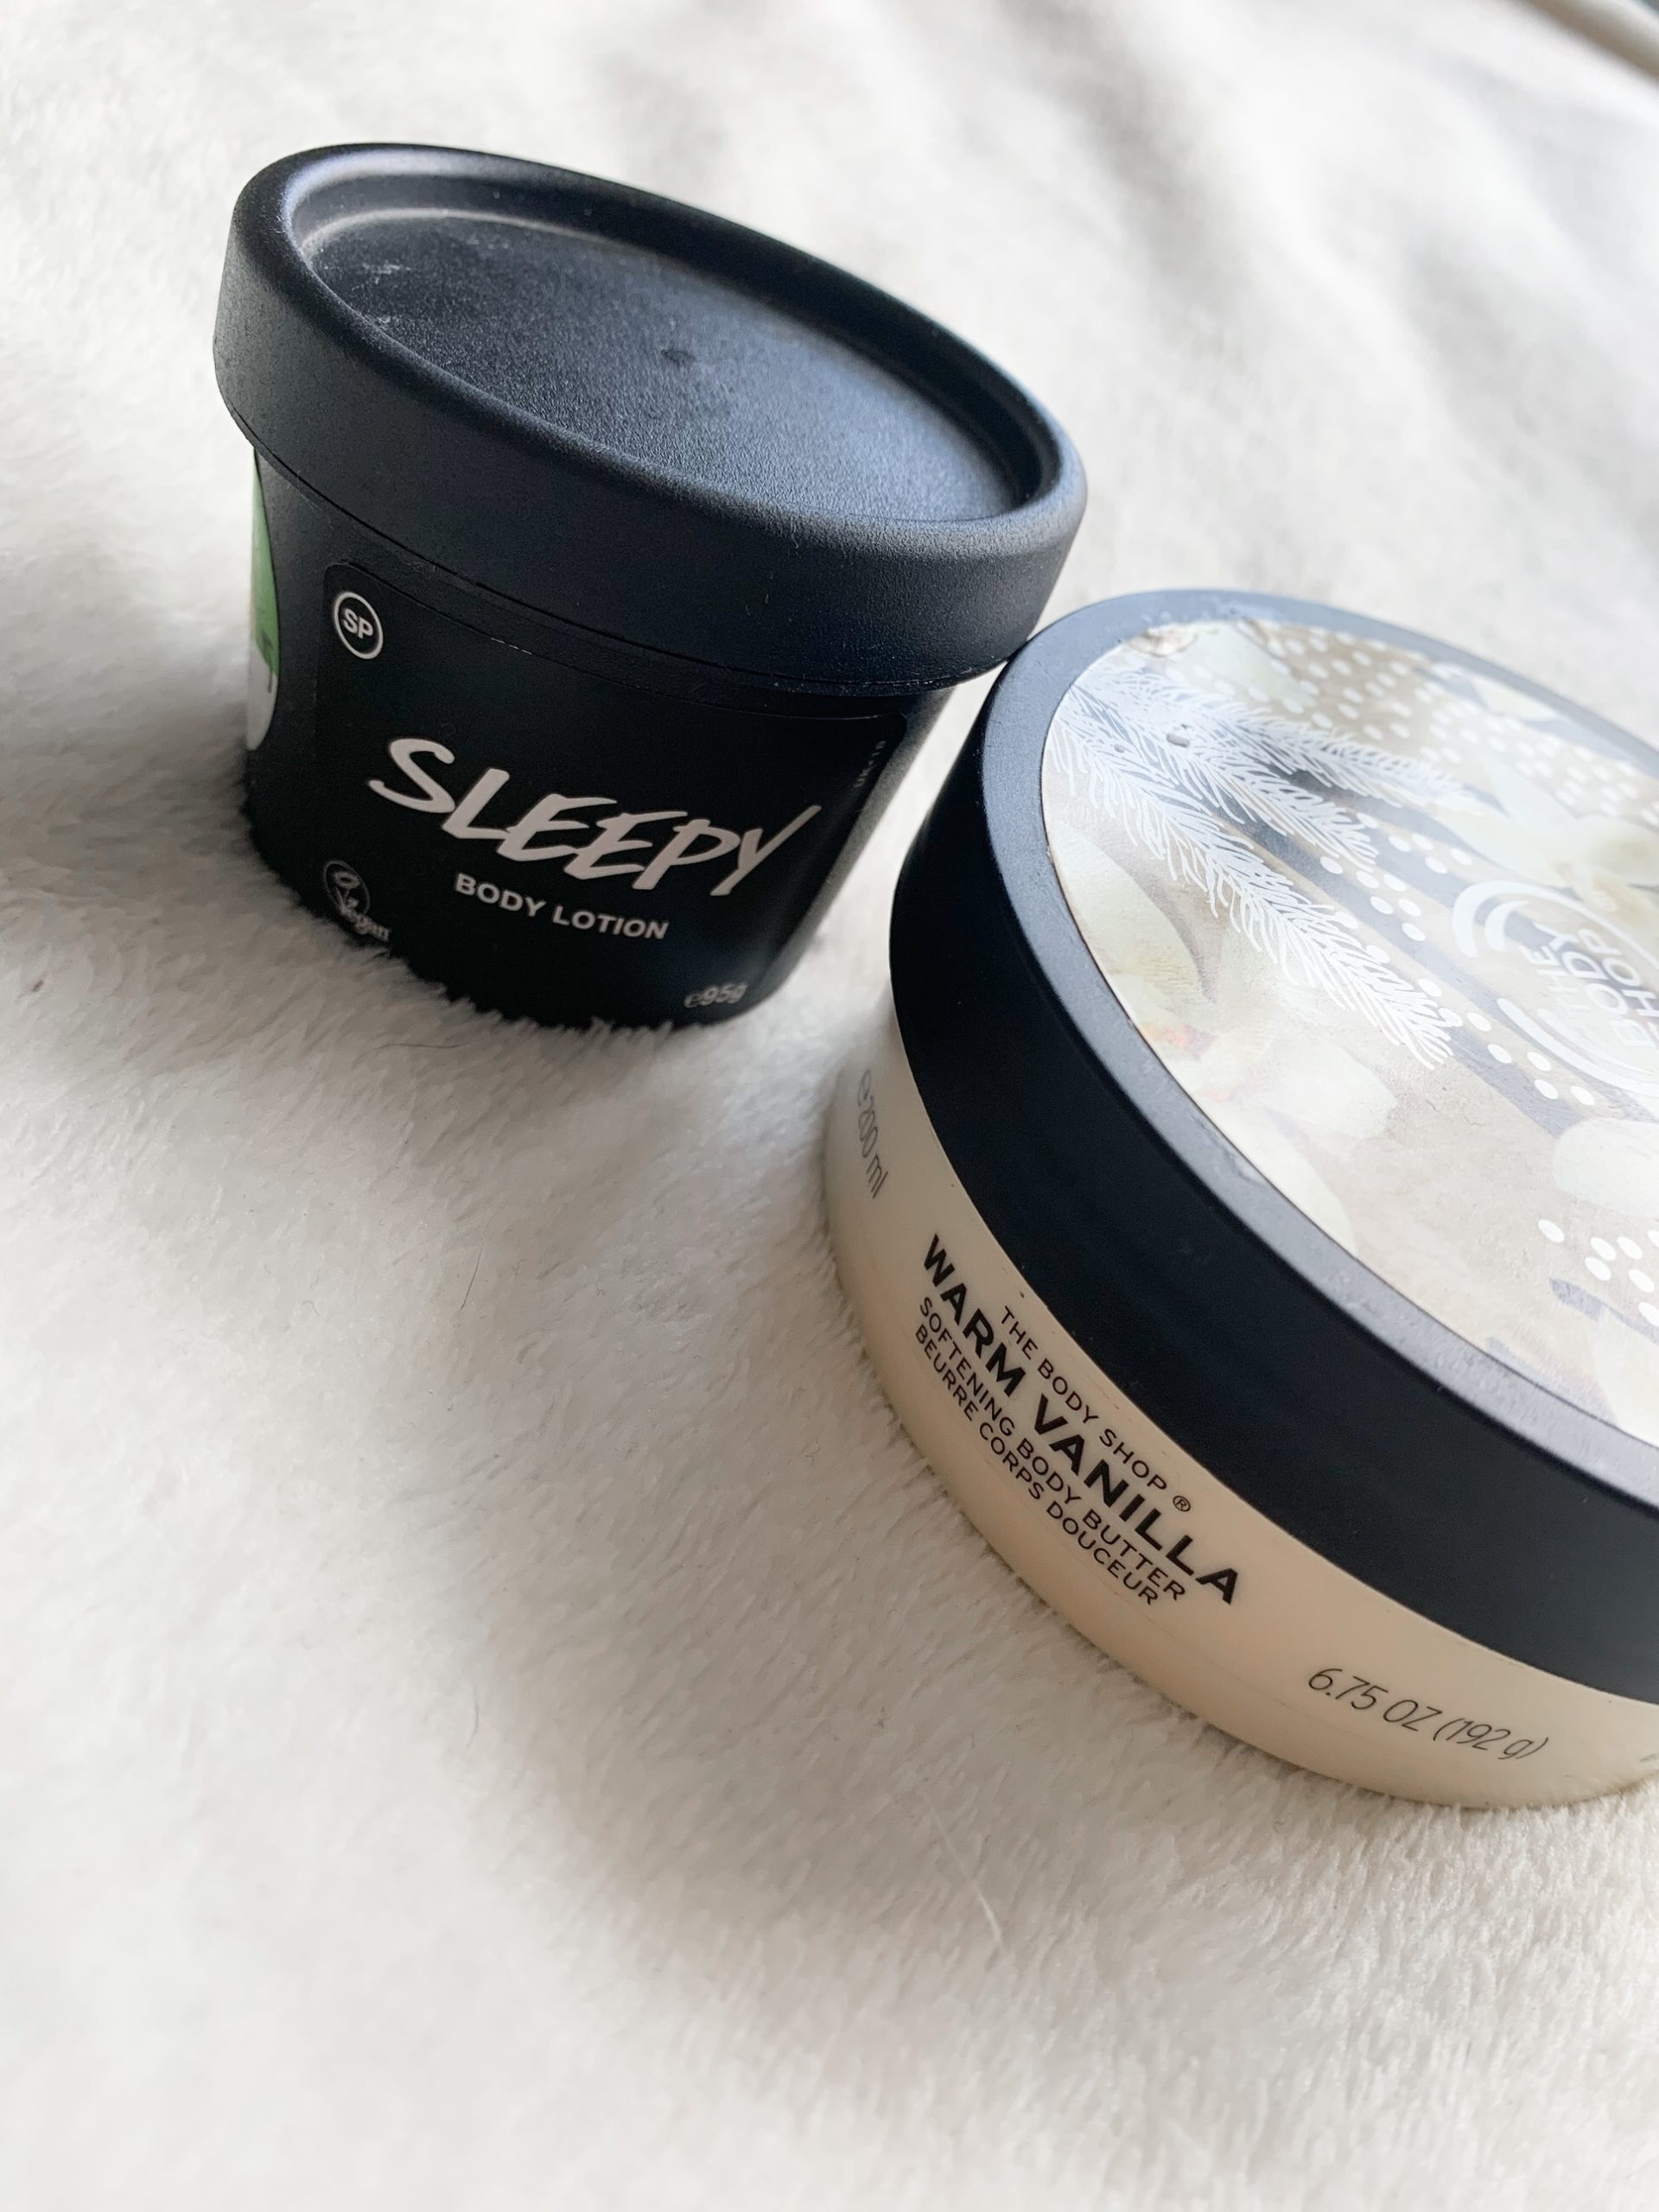 Lush's sleepy lotion and the body shop warm vanilla body butter on a white fluffy blanket